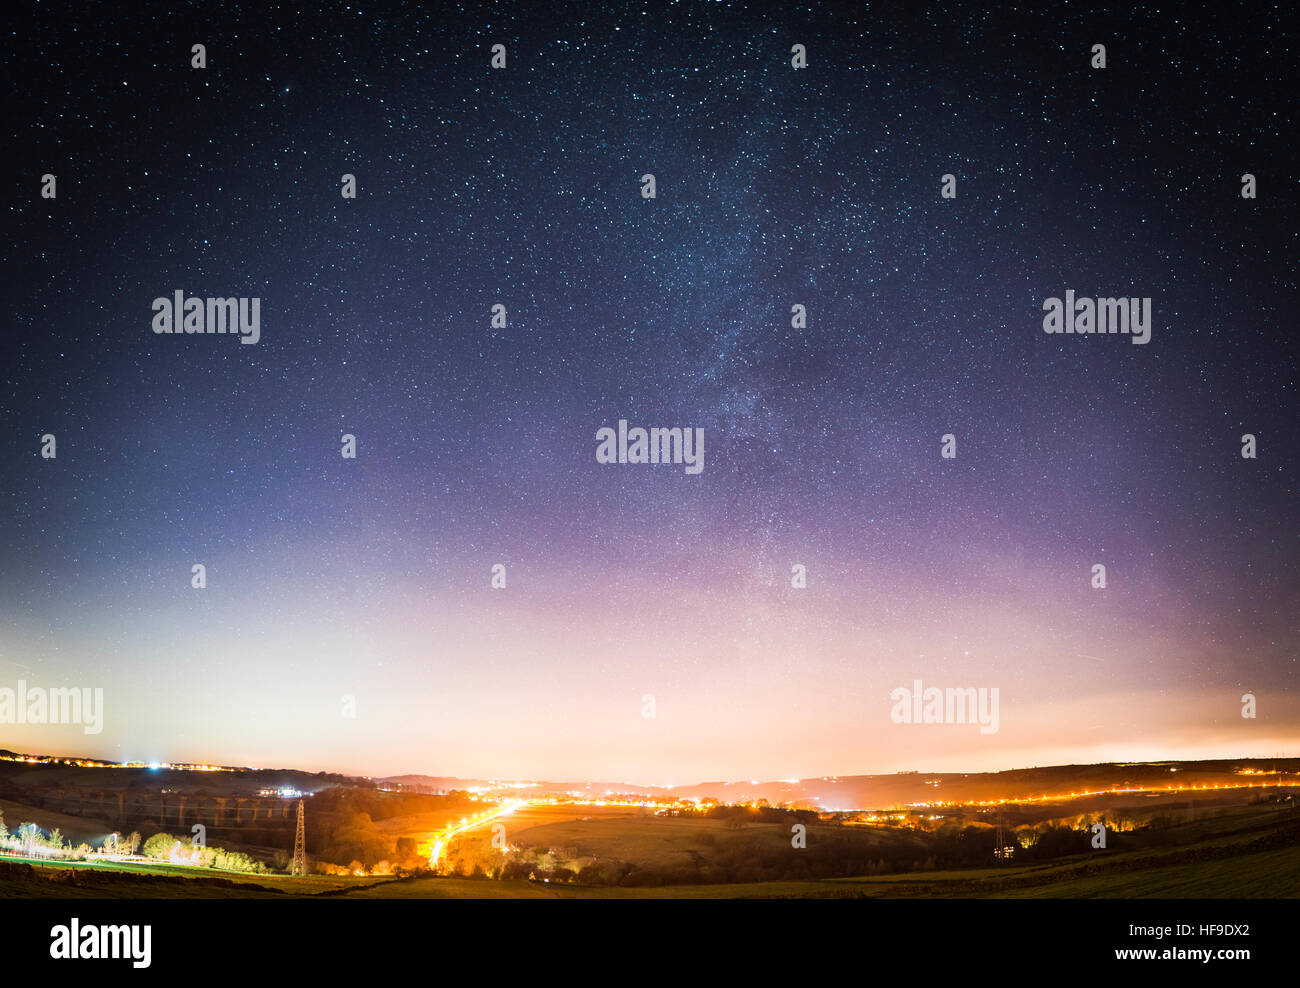 Stunning astrophotography in the skies of West Yorkshire, England, with a feint glimpse of the incredible Milky - Stock Image